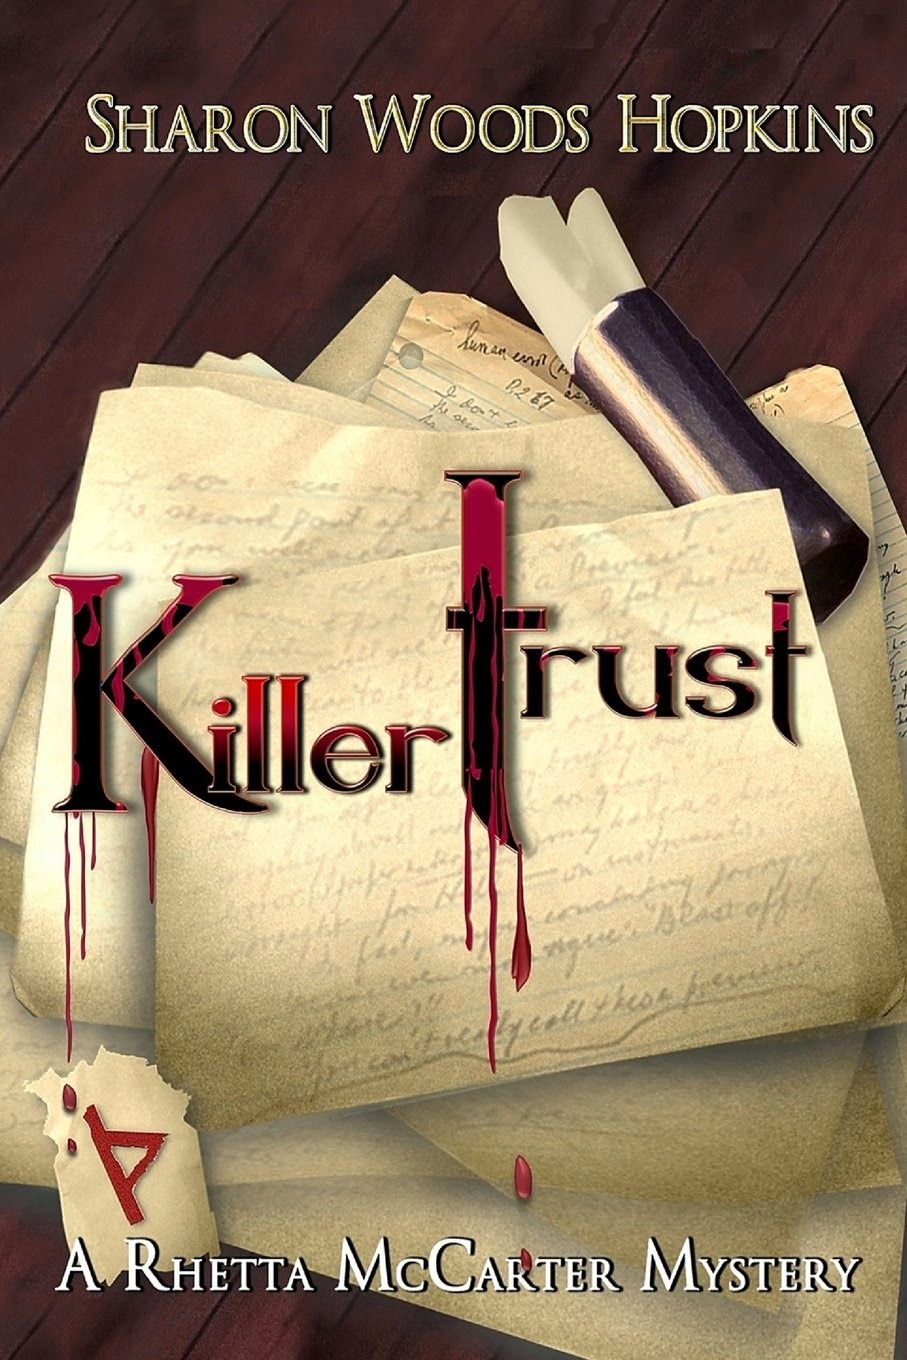 http://www.amazon.com/Killertrust-Sharon-Woods-Hopkins/dp/0989345610/ref=sr_1_1?s=books&ie=UTF8&qid=1399315623&sr=1-1&keywords=killertrust